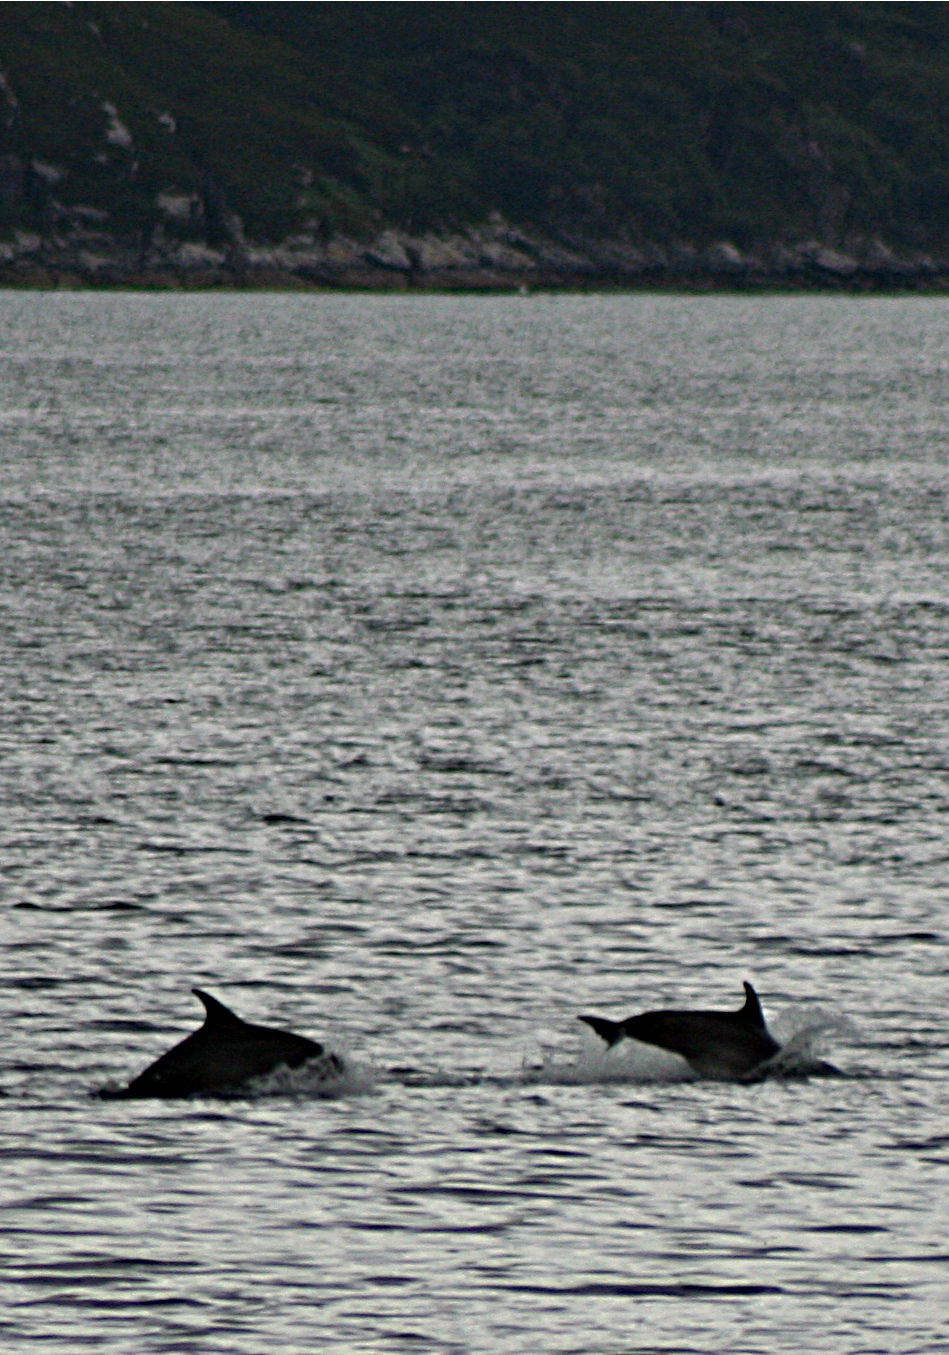 Dolphins in the west, at Inverie, Knoydart. Possibly common dolphins.